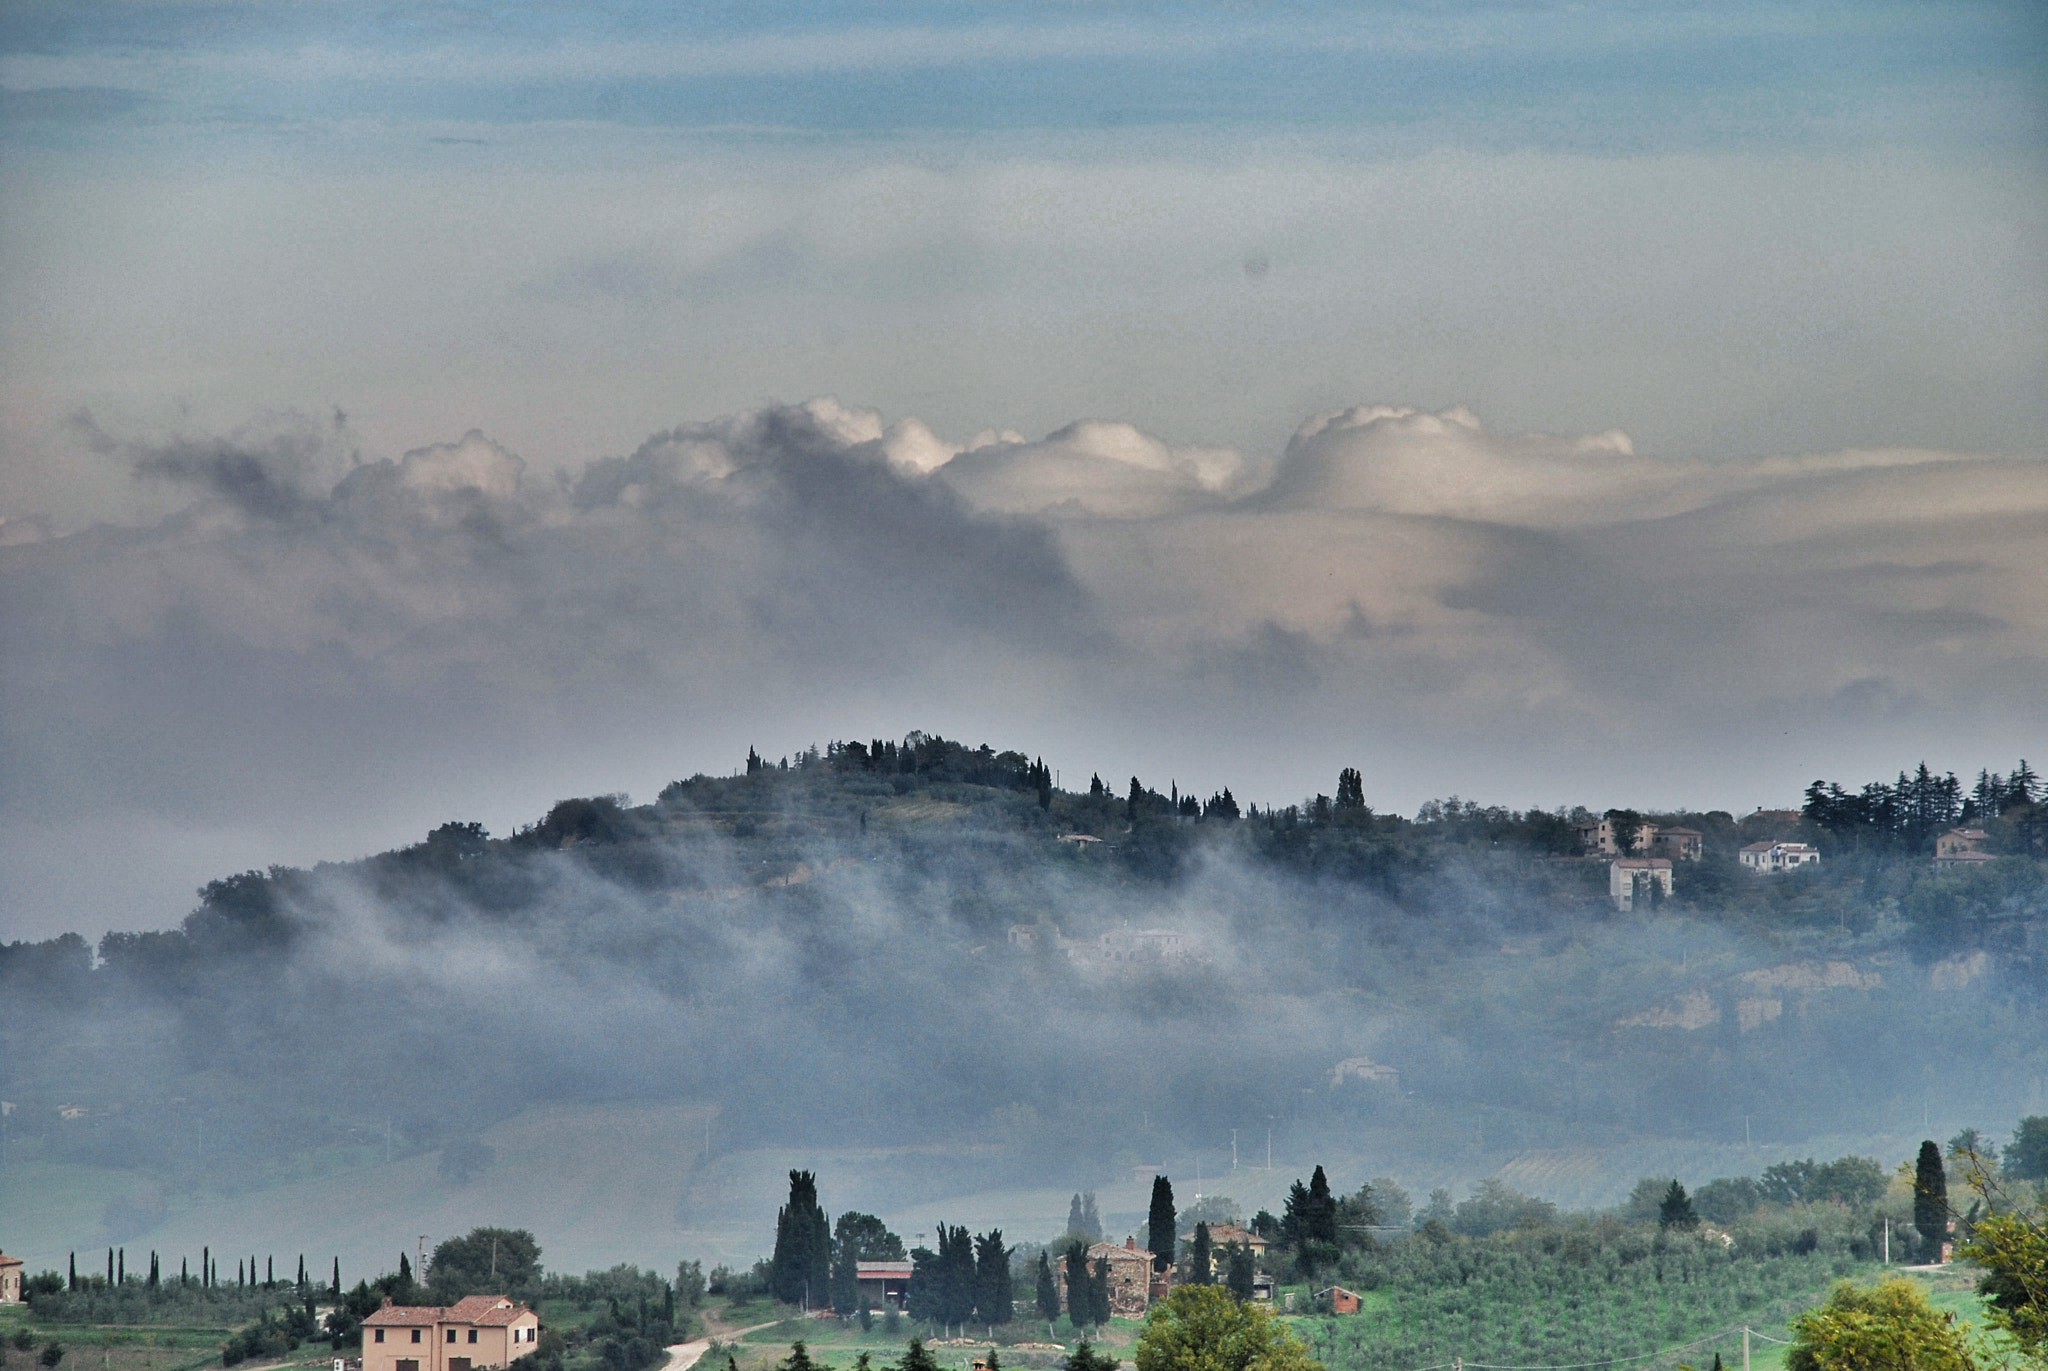 Photograph Clouds and fog in the morning in Montepulciano by luigibertagni on 500px